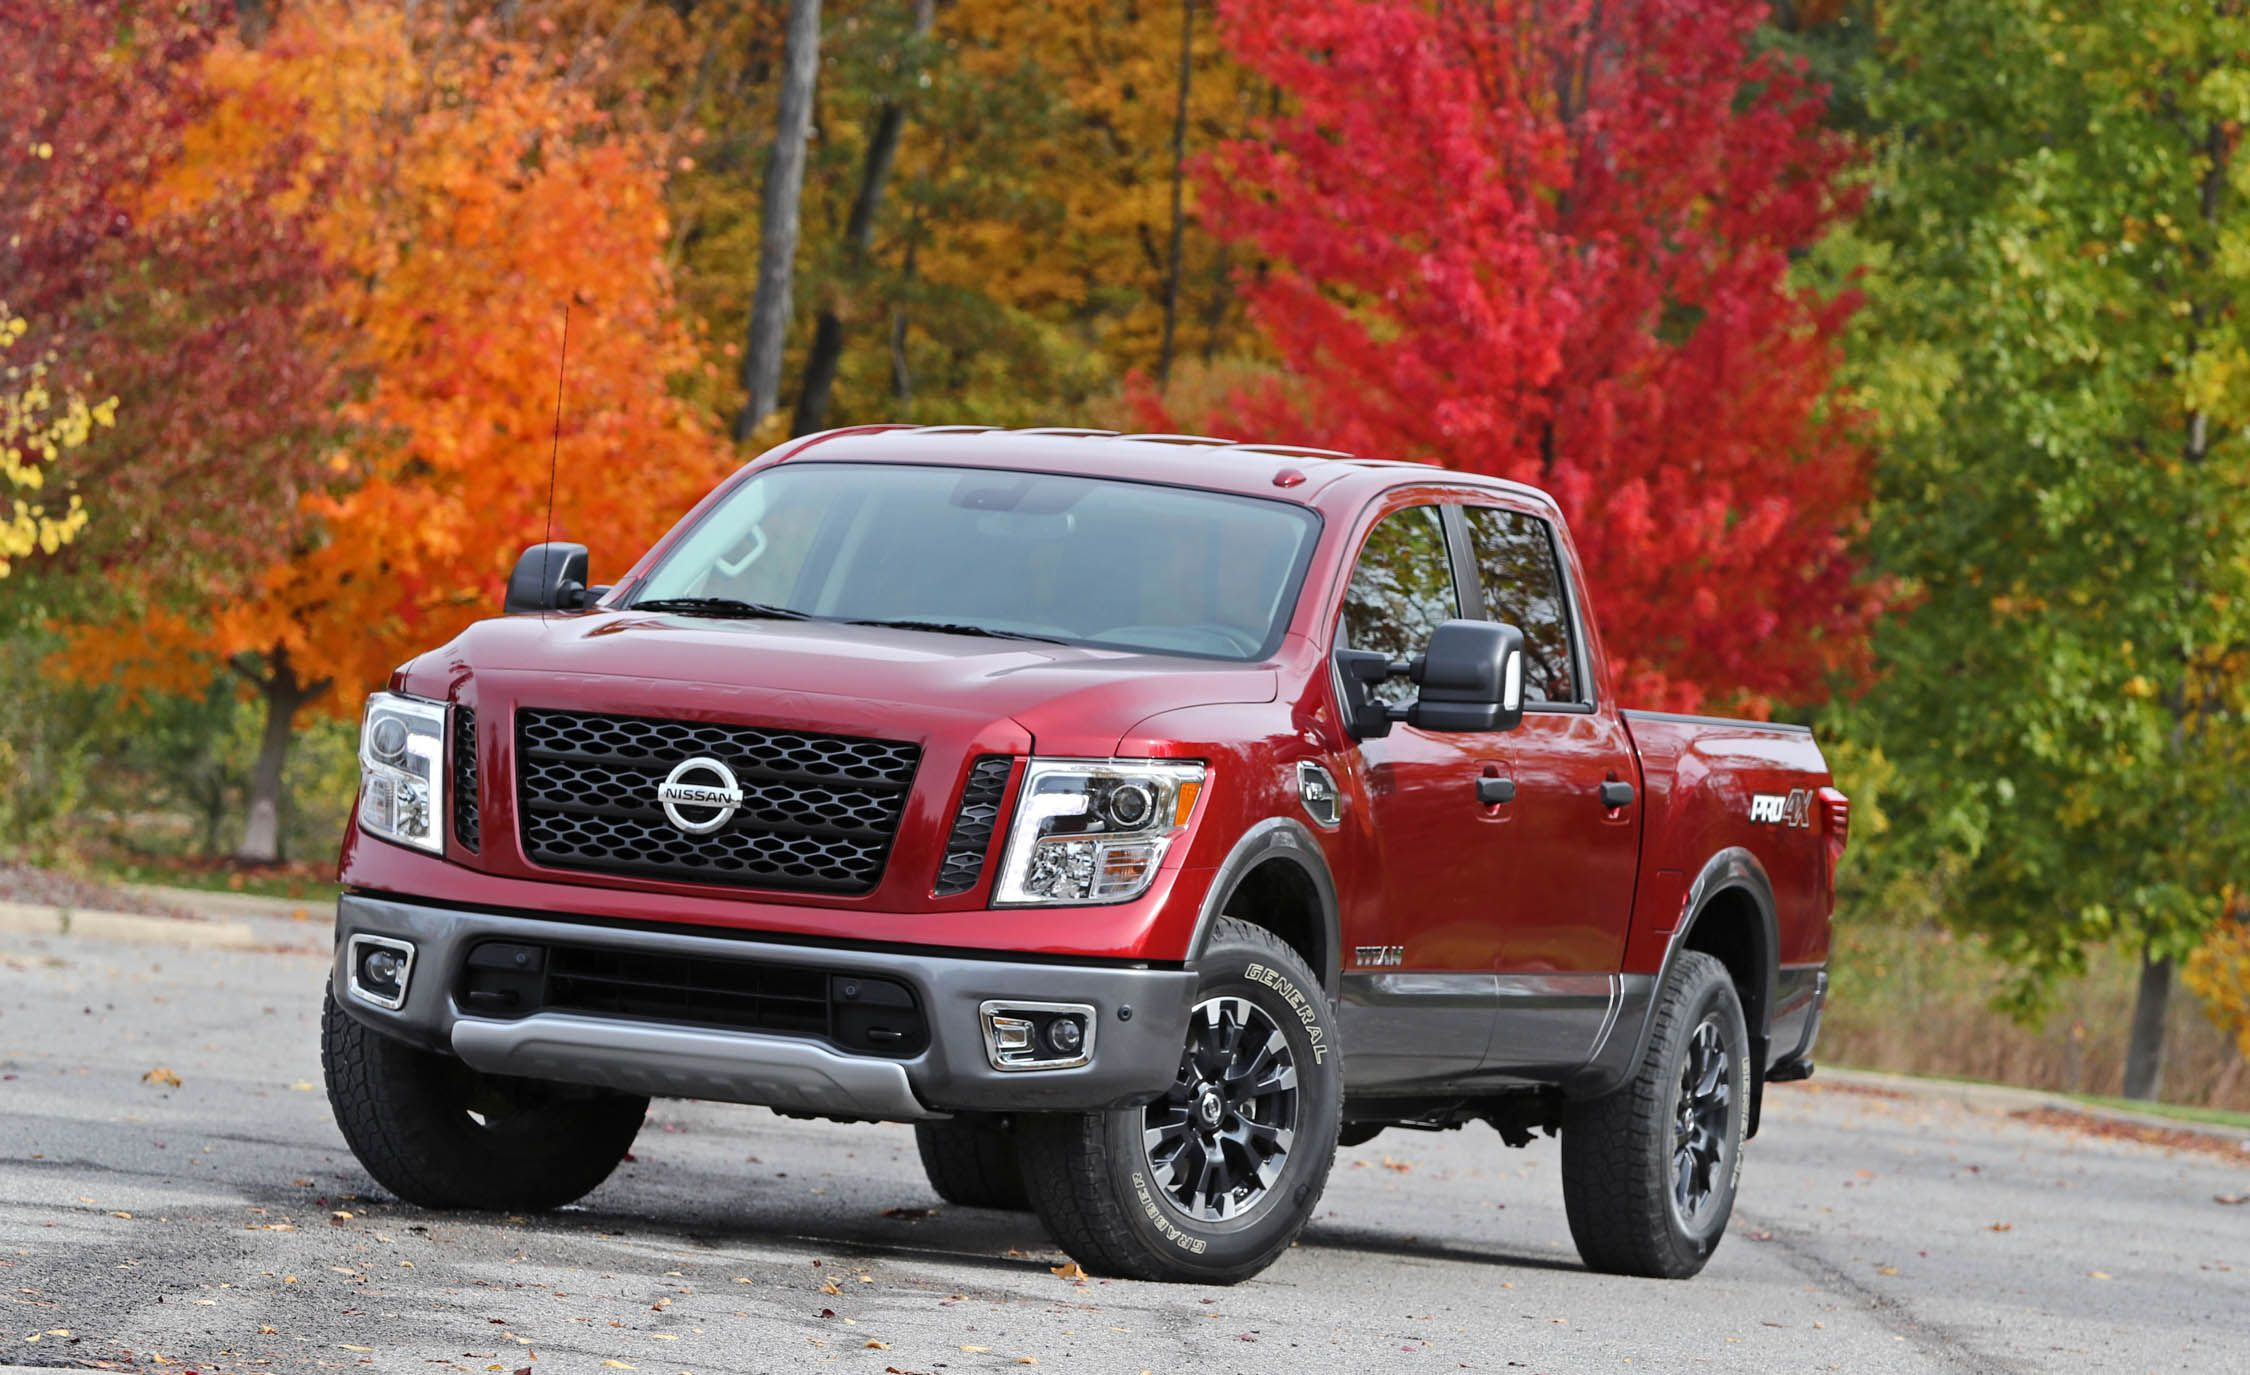 2017 nissan titan safety and driver assistance review car and driver. Black Bedroom Furniture Sets. Home Design Ideas